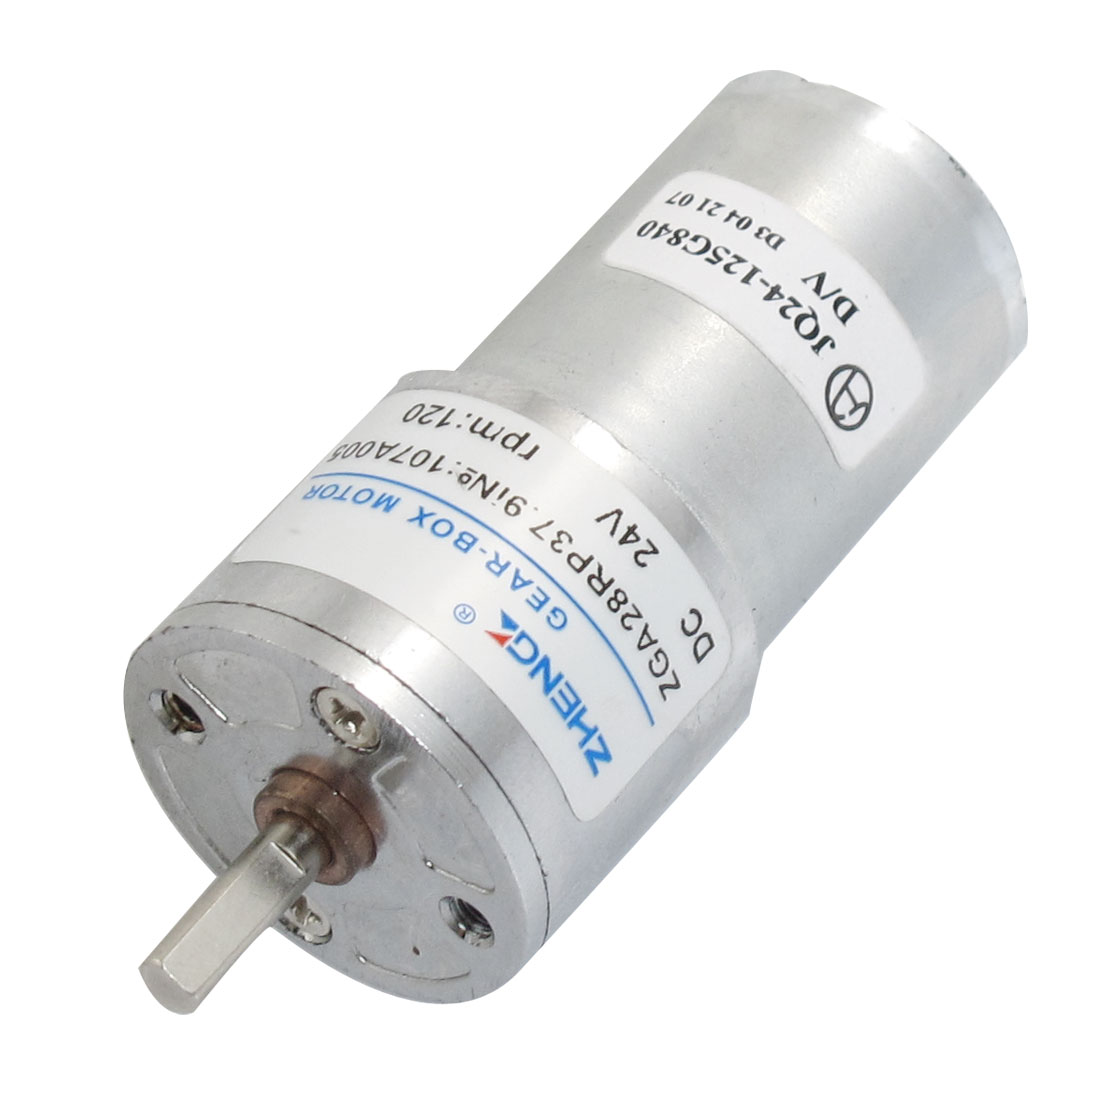 DC 24V 120RPM 2 Terminals Electric Geared Motor 28mm x 56mm